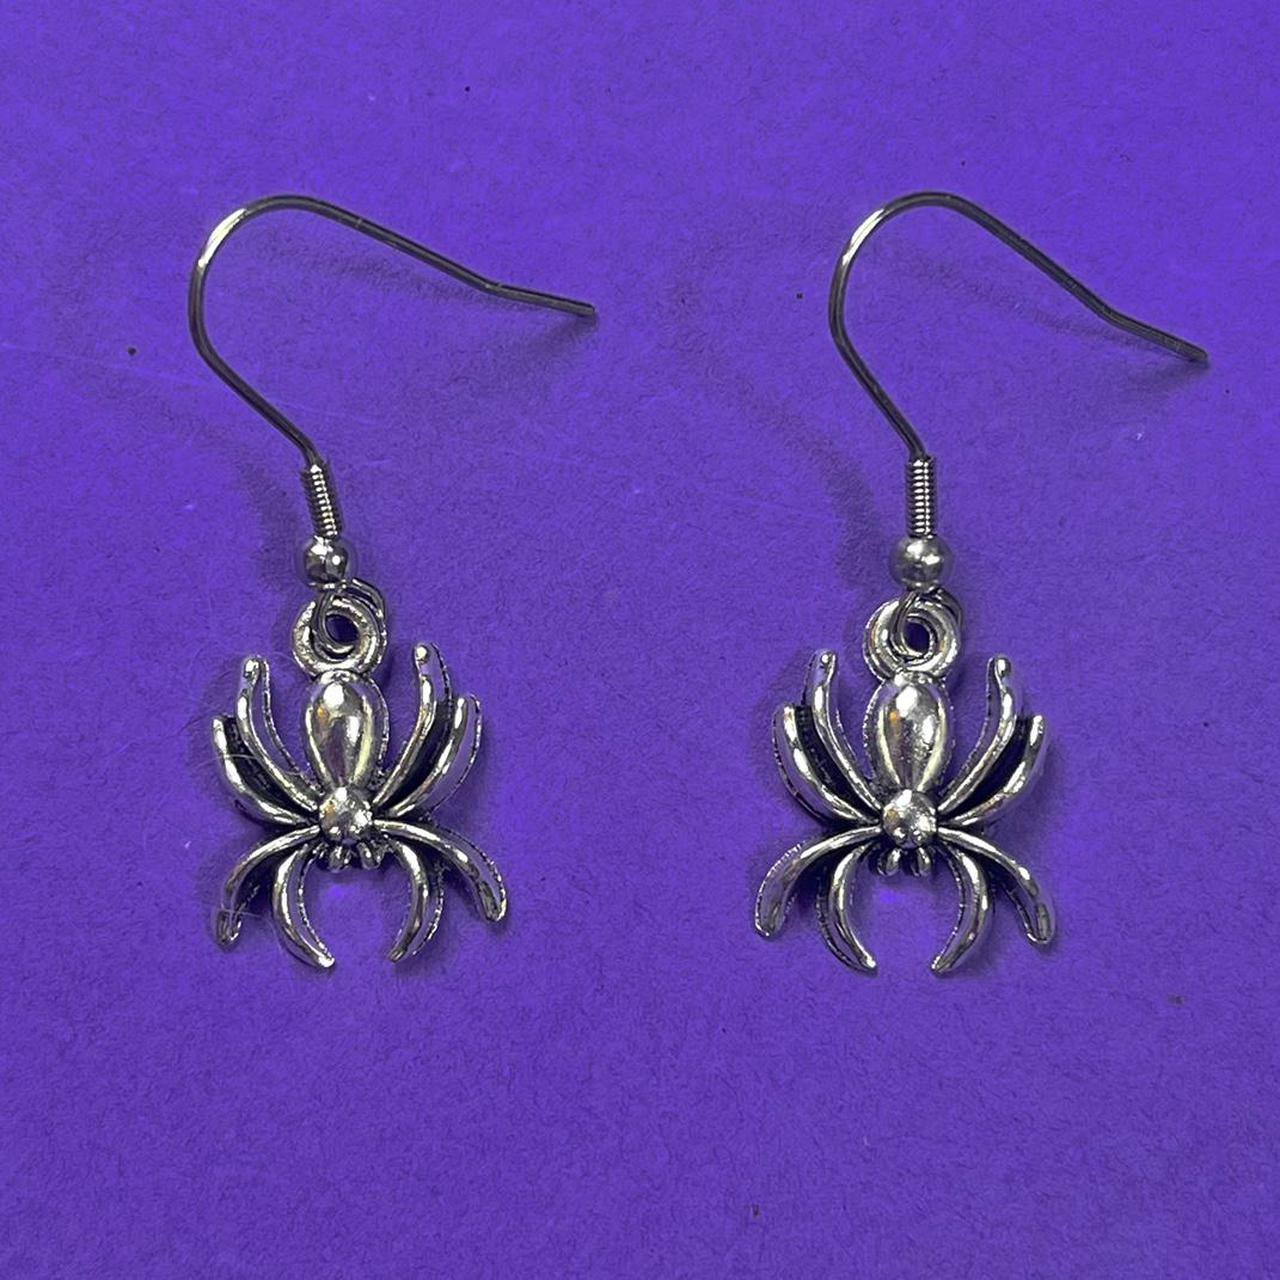 Product Image 1 - silver spider charm earrings   comes